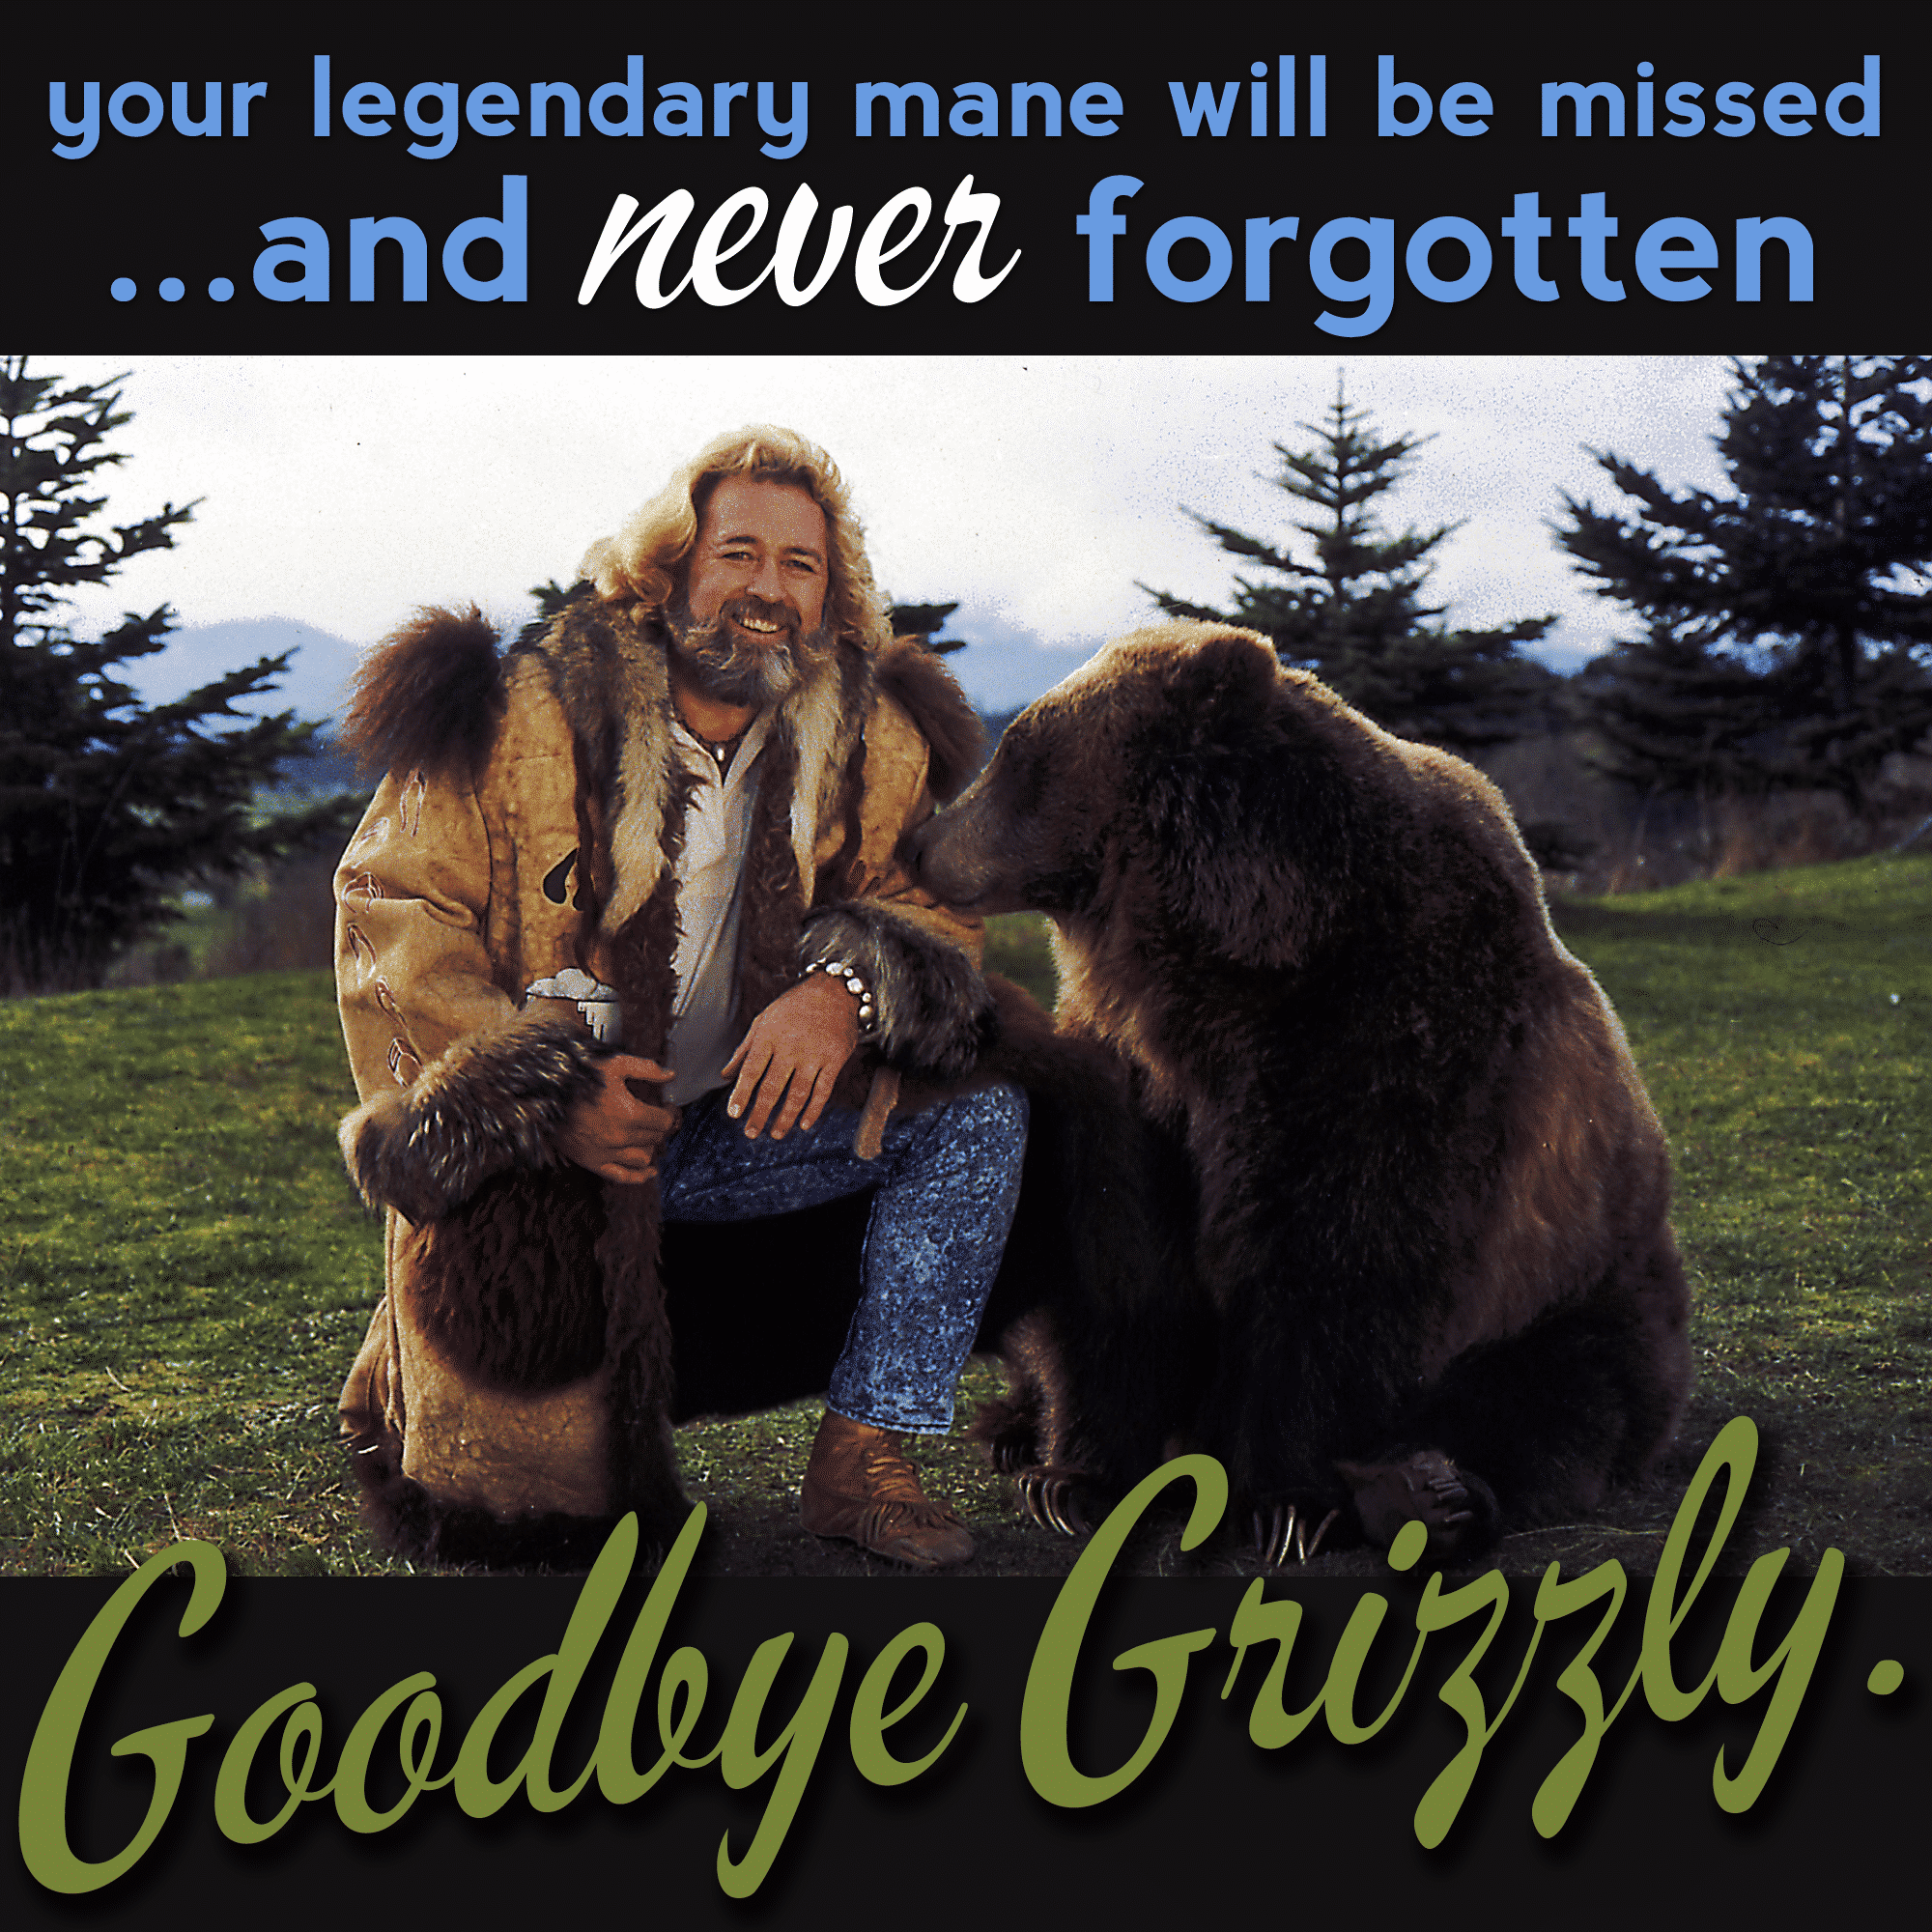 Grizzly Adams - beard legend